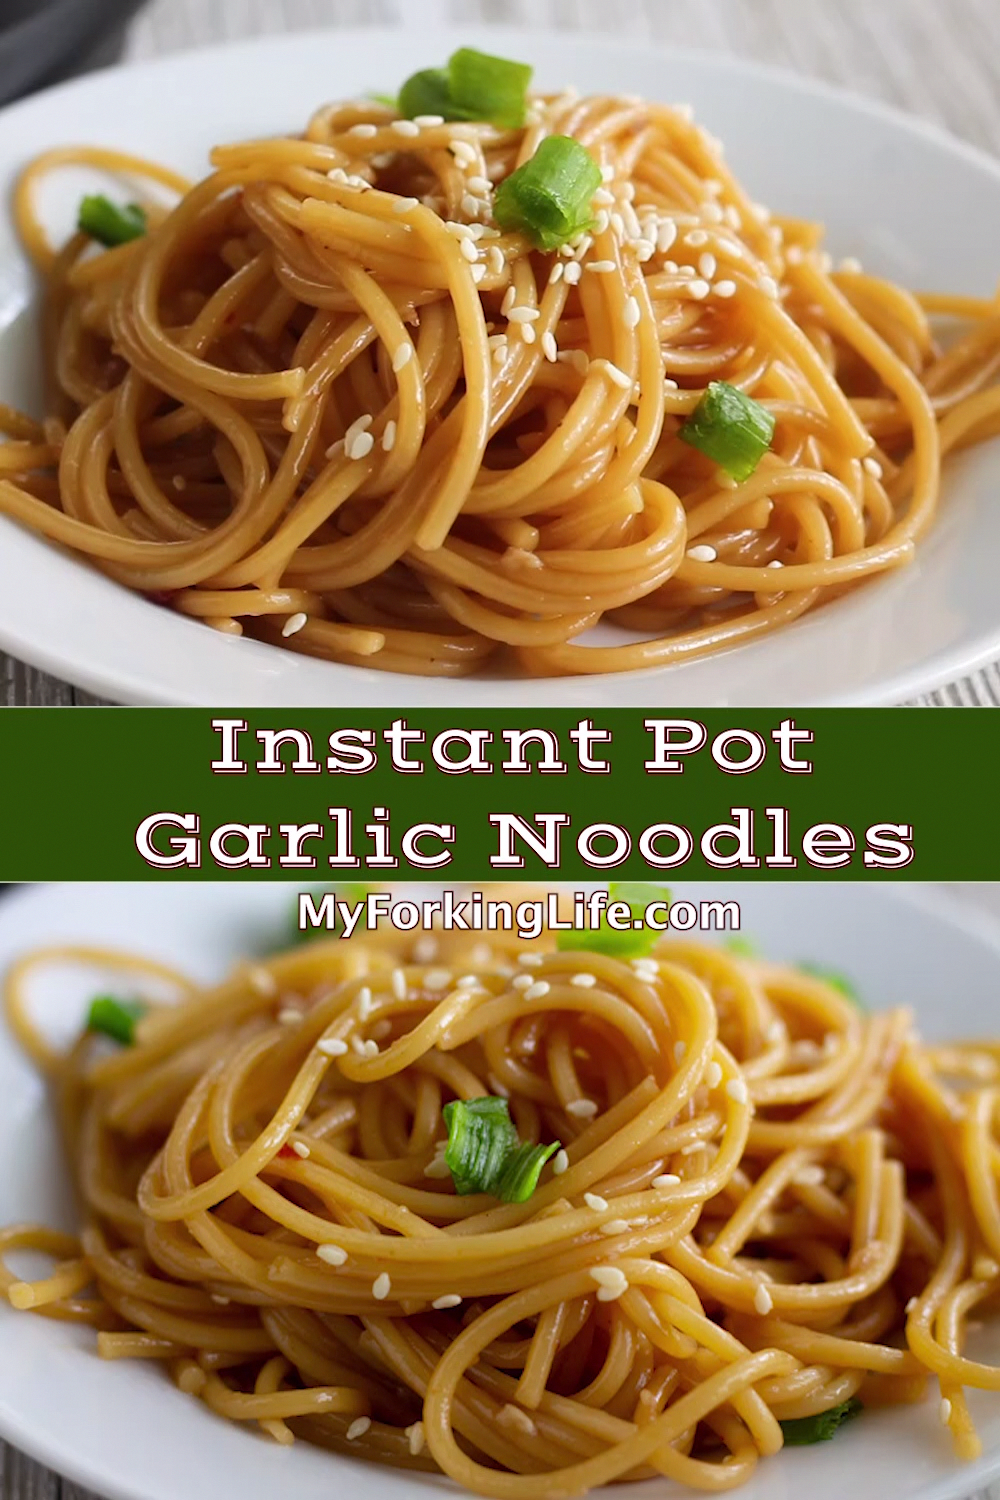 These Garlic Instant Pot Noodles are made with Asian flavors and all made in your Instant Pot. A quick and easy meal. Step by step photos and video included in the recipe post. #instantpotrecipe #pressurecookerrecipe #garlicnoodles #instantpotnoodles #asiannoodles #crockpotchickenhealthy